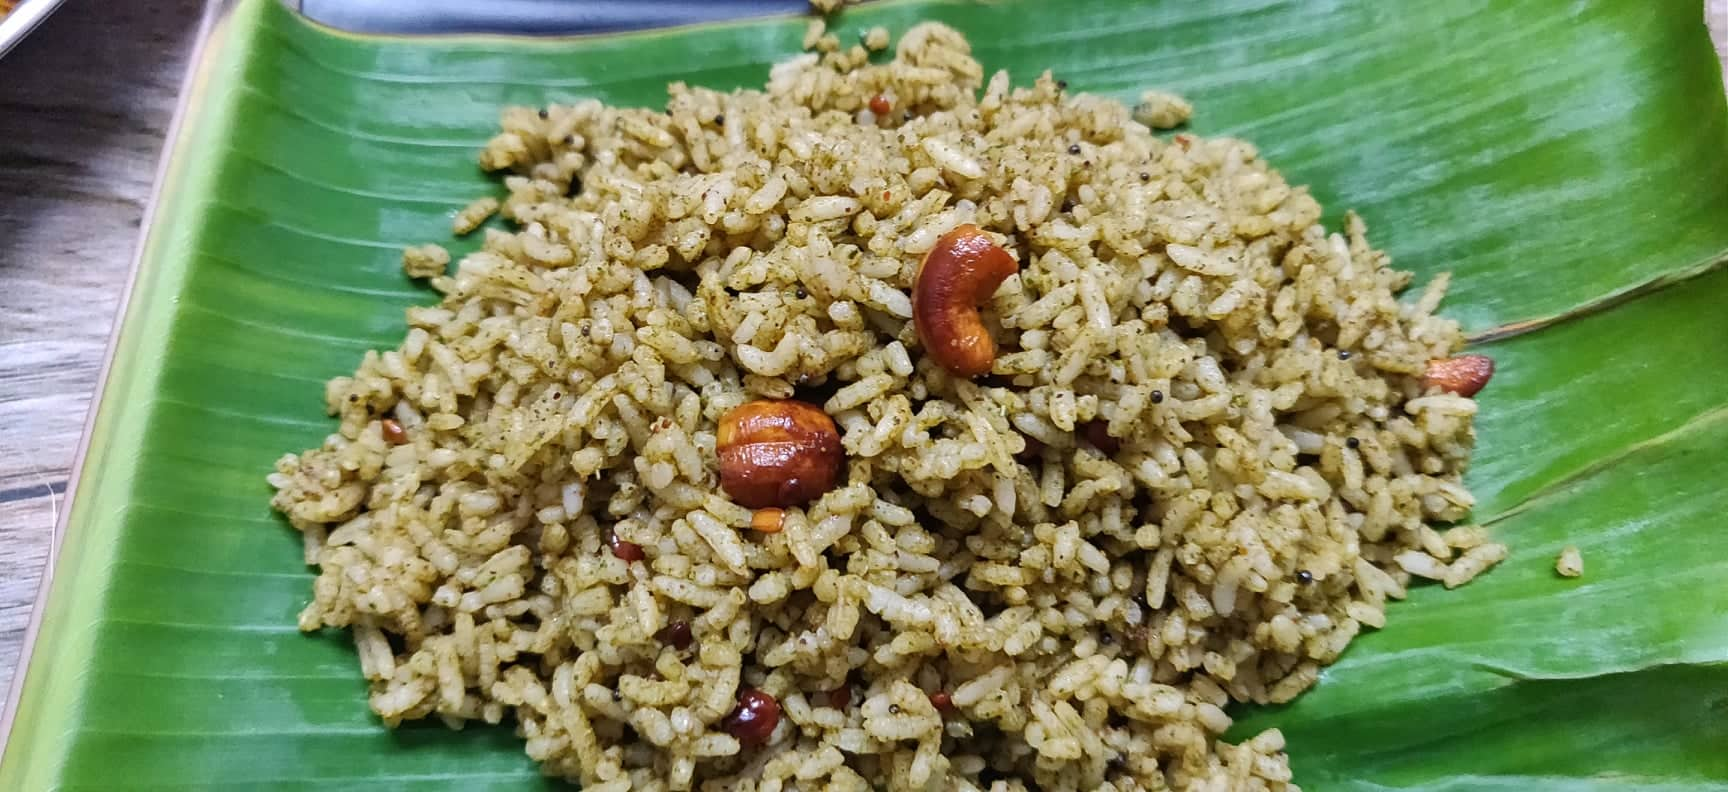 curry_leaves_rice - 83584185_173091170718311_6763005411525132288_n